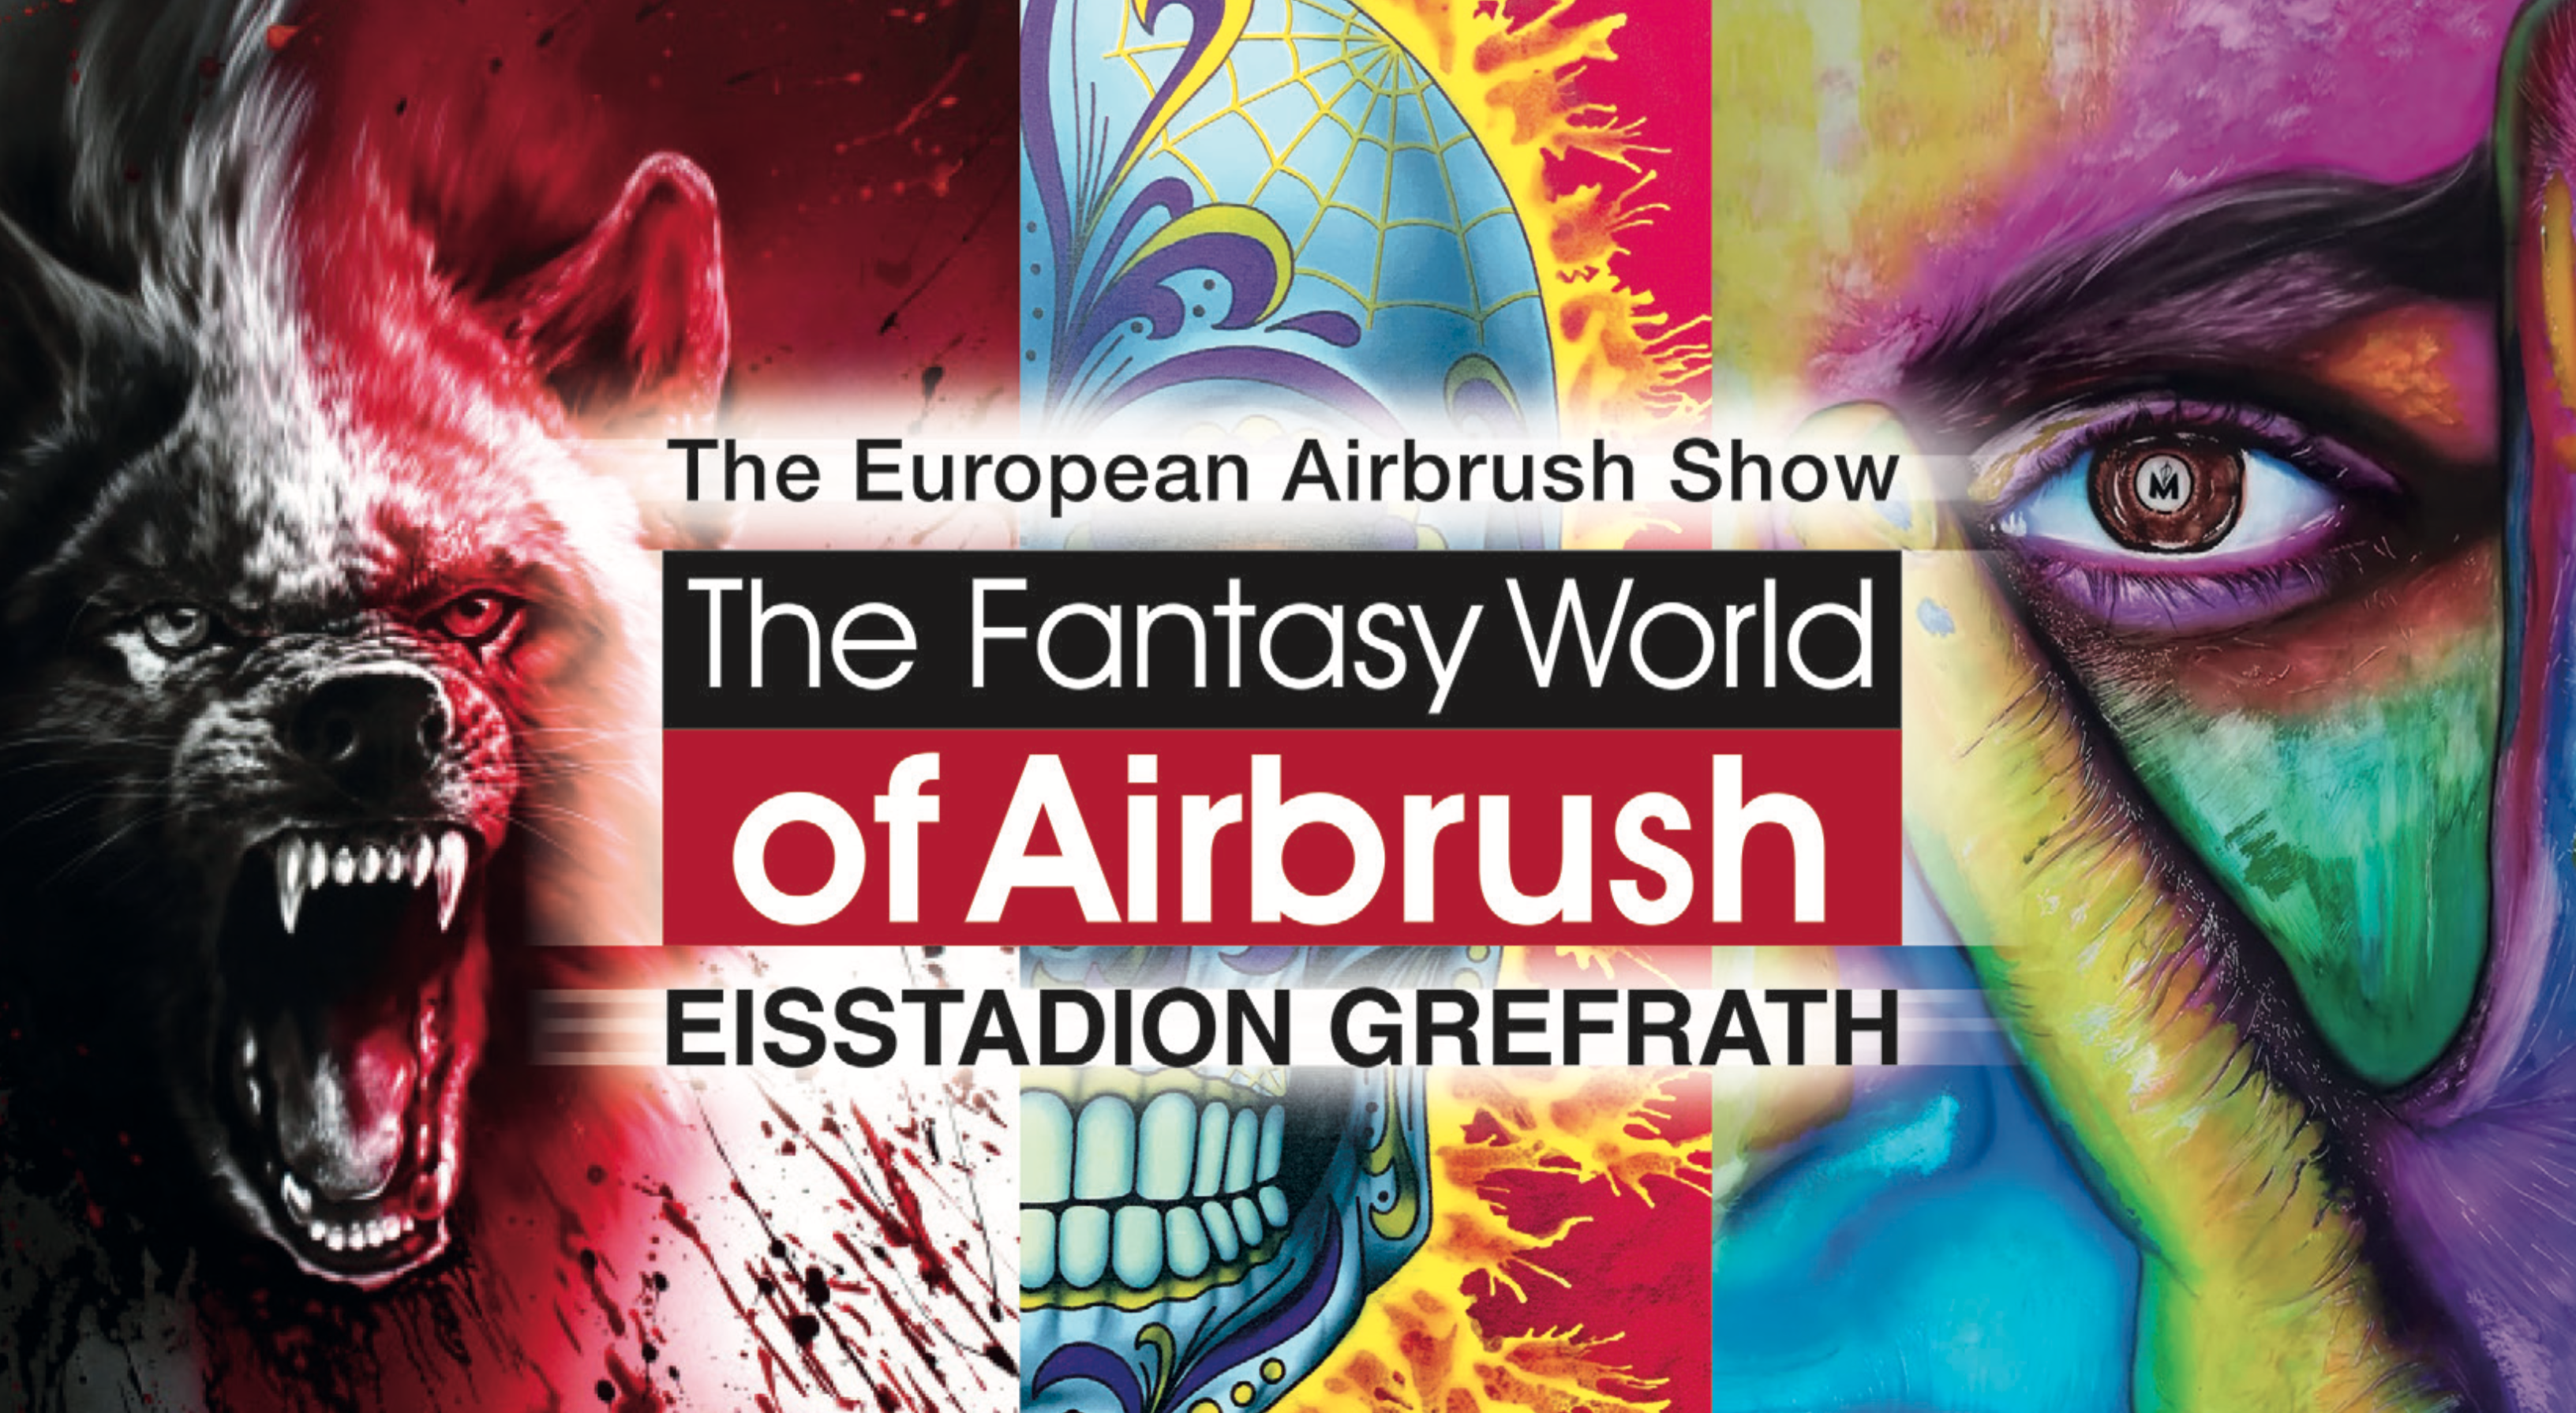 Werde Teil der Fantasy World of Airbrush!